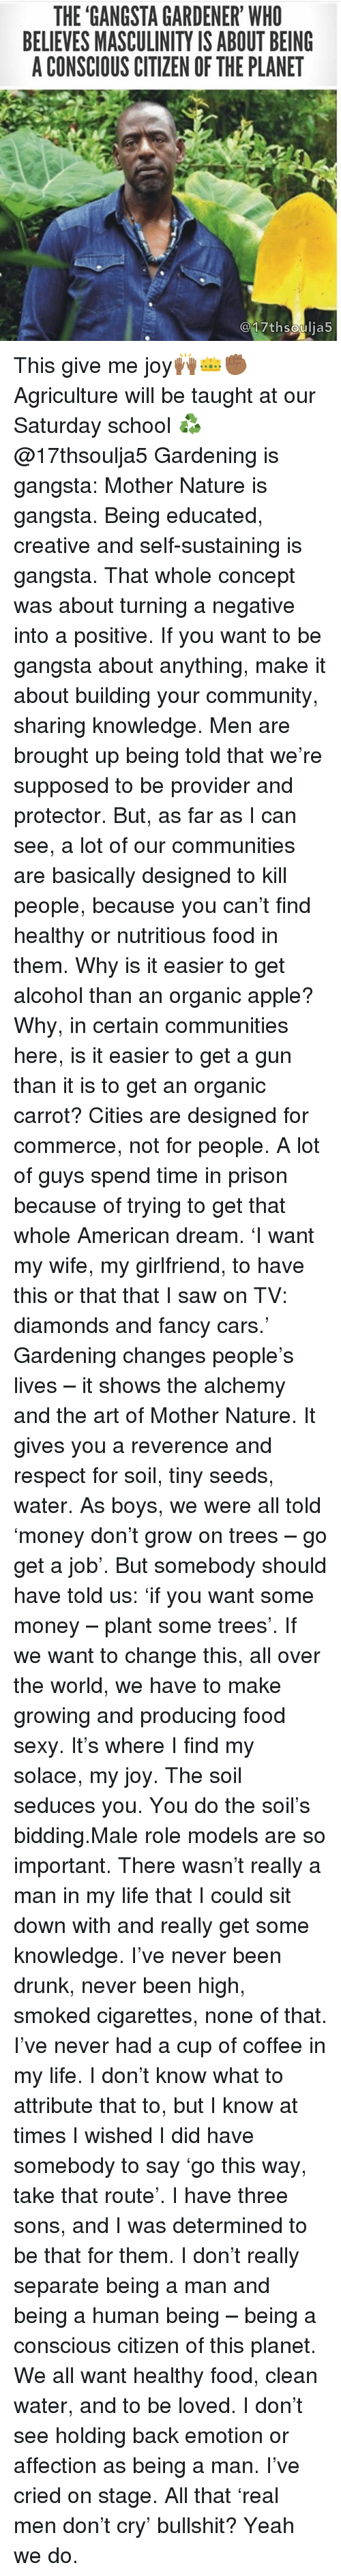 can you really make money watching tv dream the gangsta gardener who believes masculinity is about